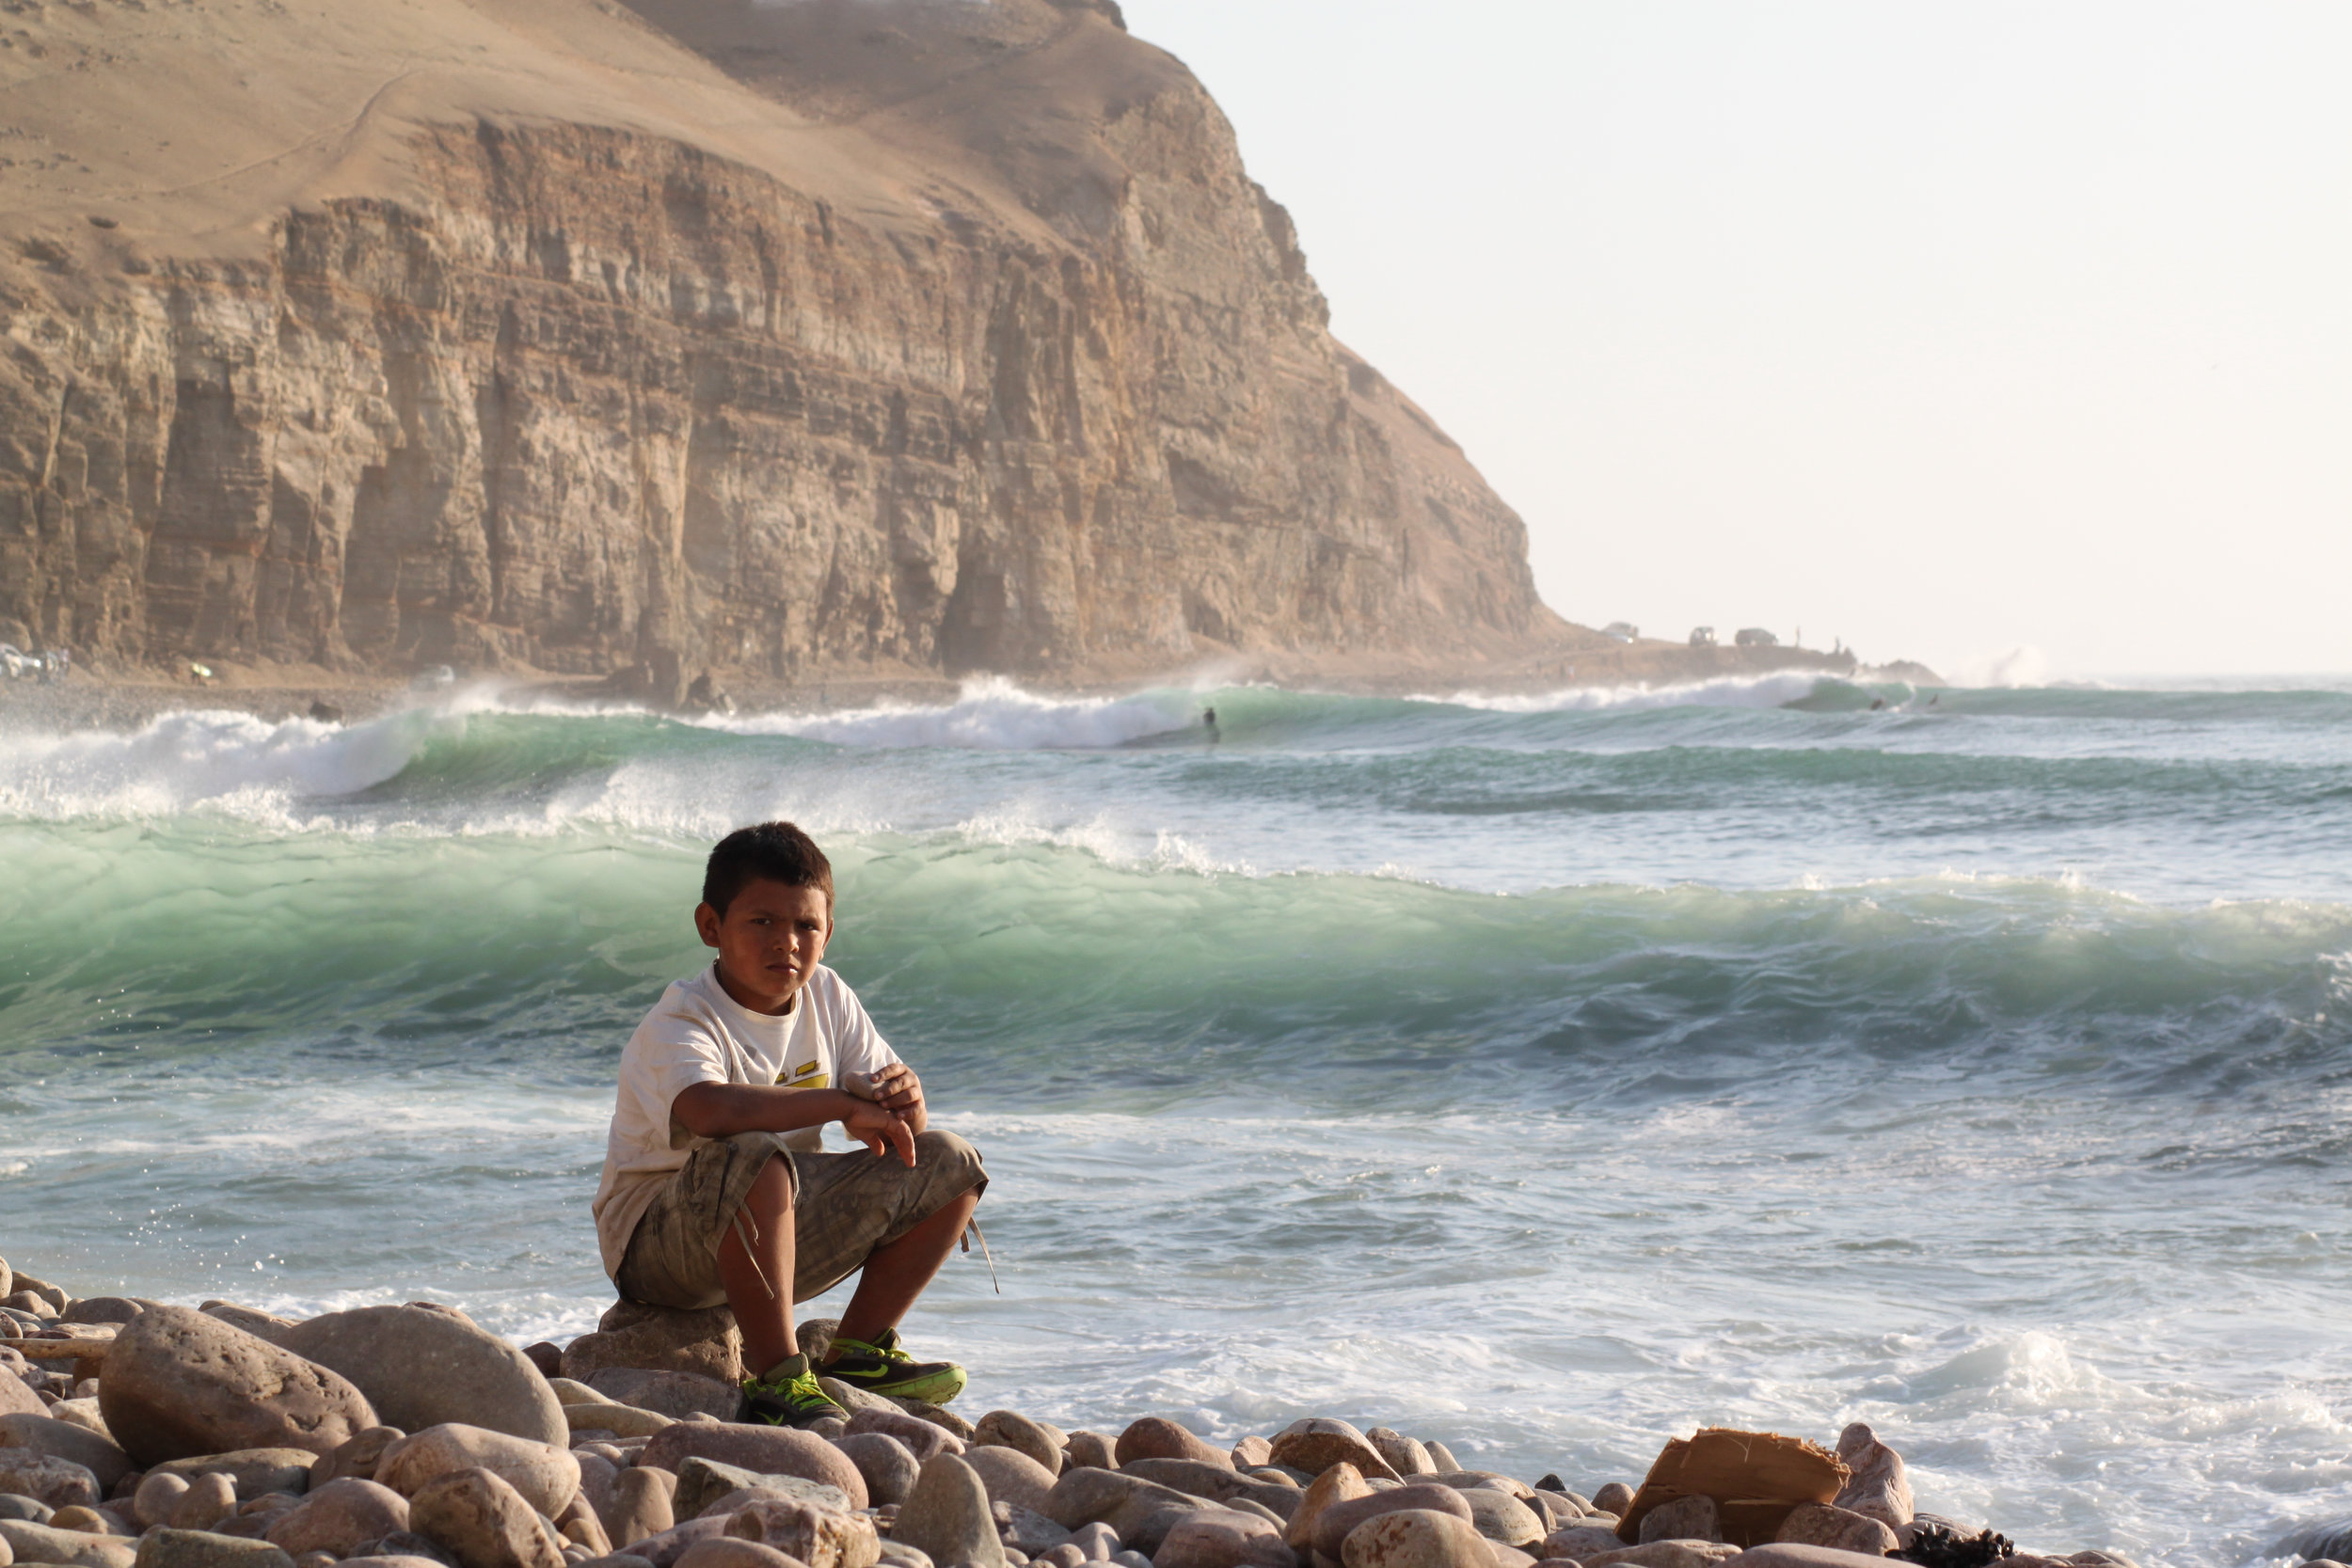 A boy sits on the shore of La Herradura, Lima, while waves are surfed in the distance.